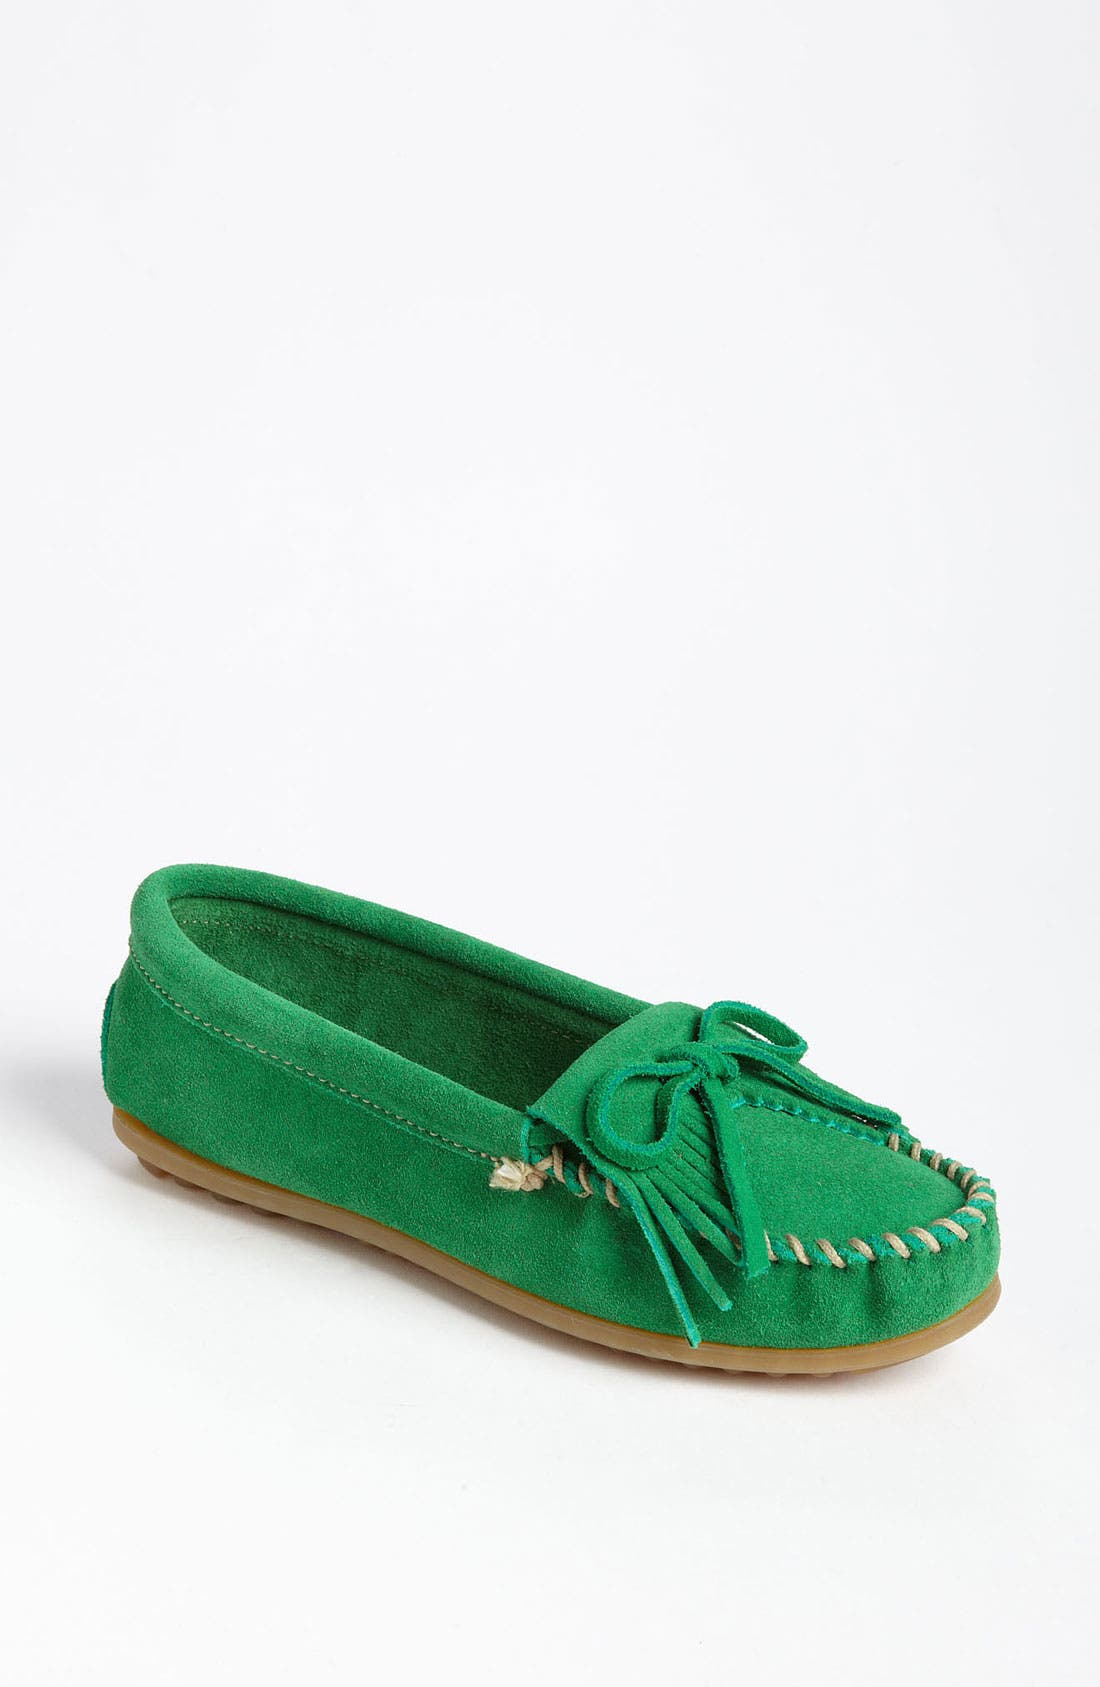 Alternate Image 1 Selected - Minnetonka 'Kilty' Suede Moccasin (Nordstrom Exclusive Color)